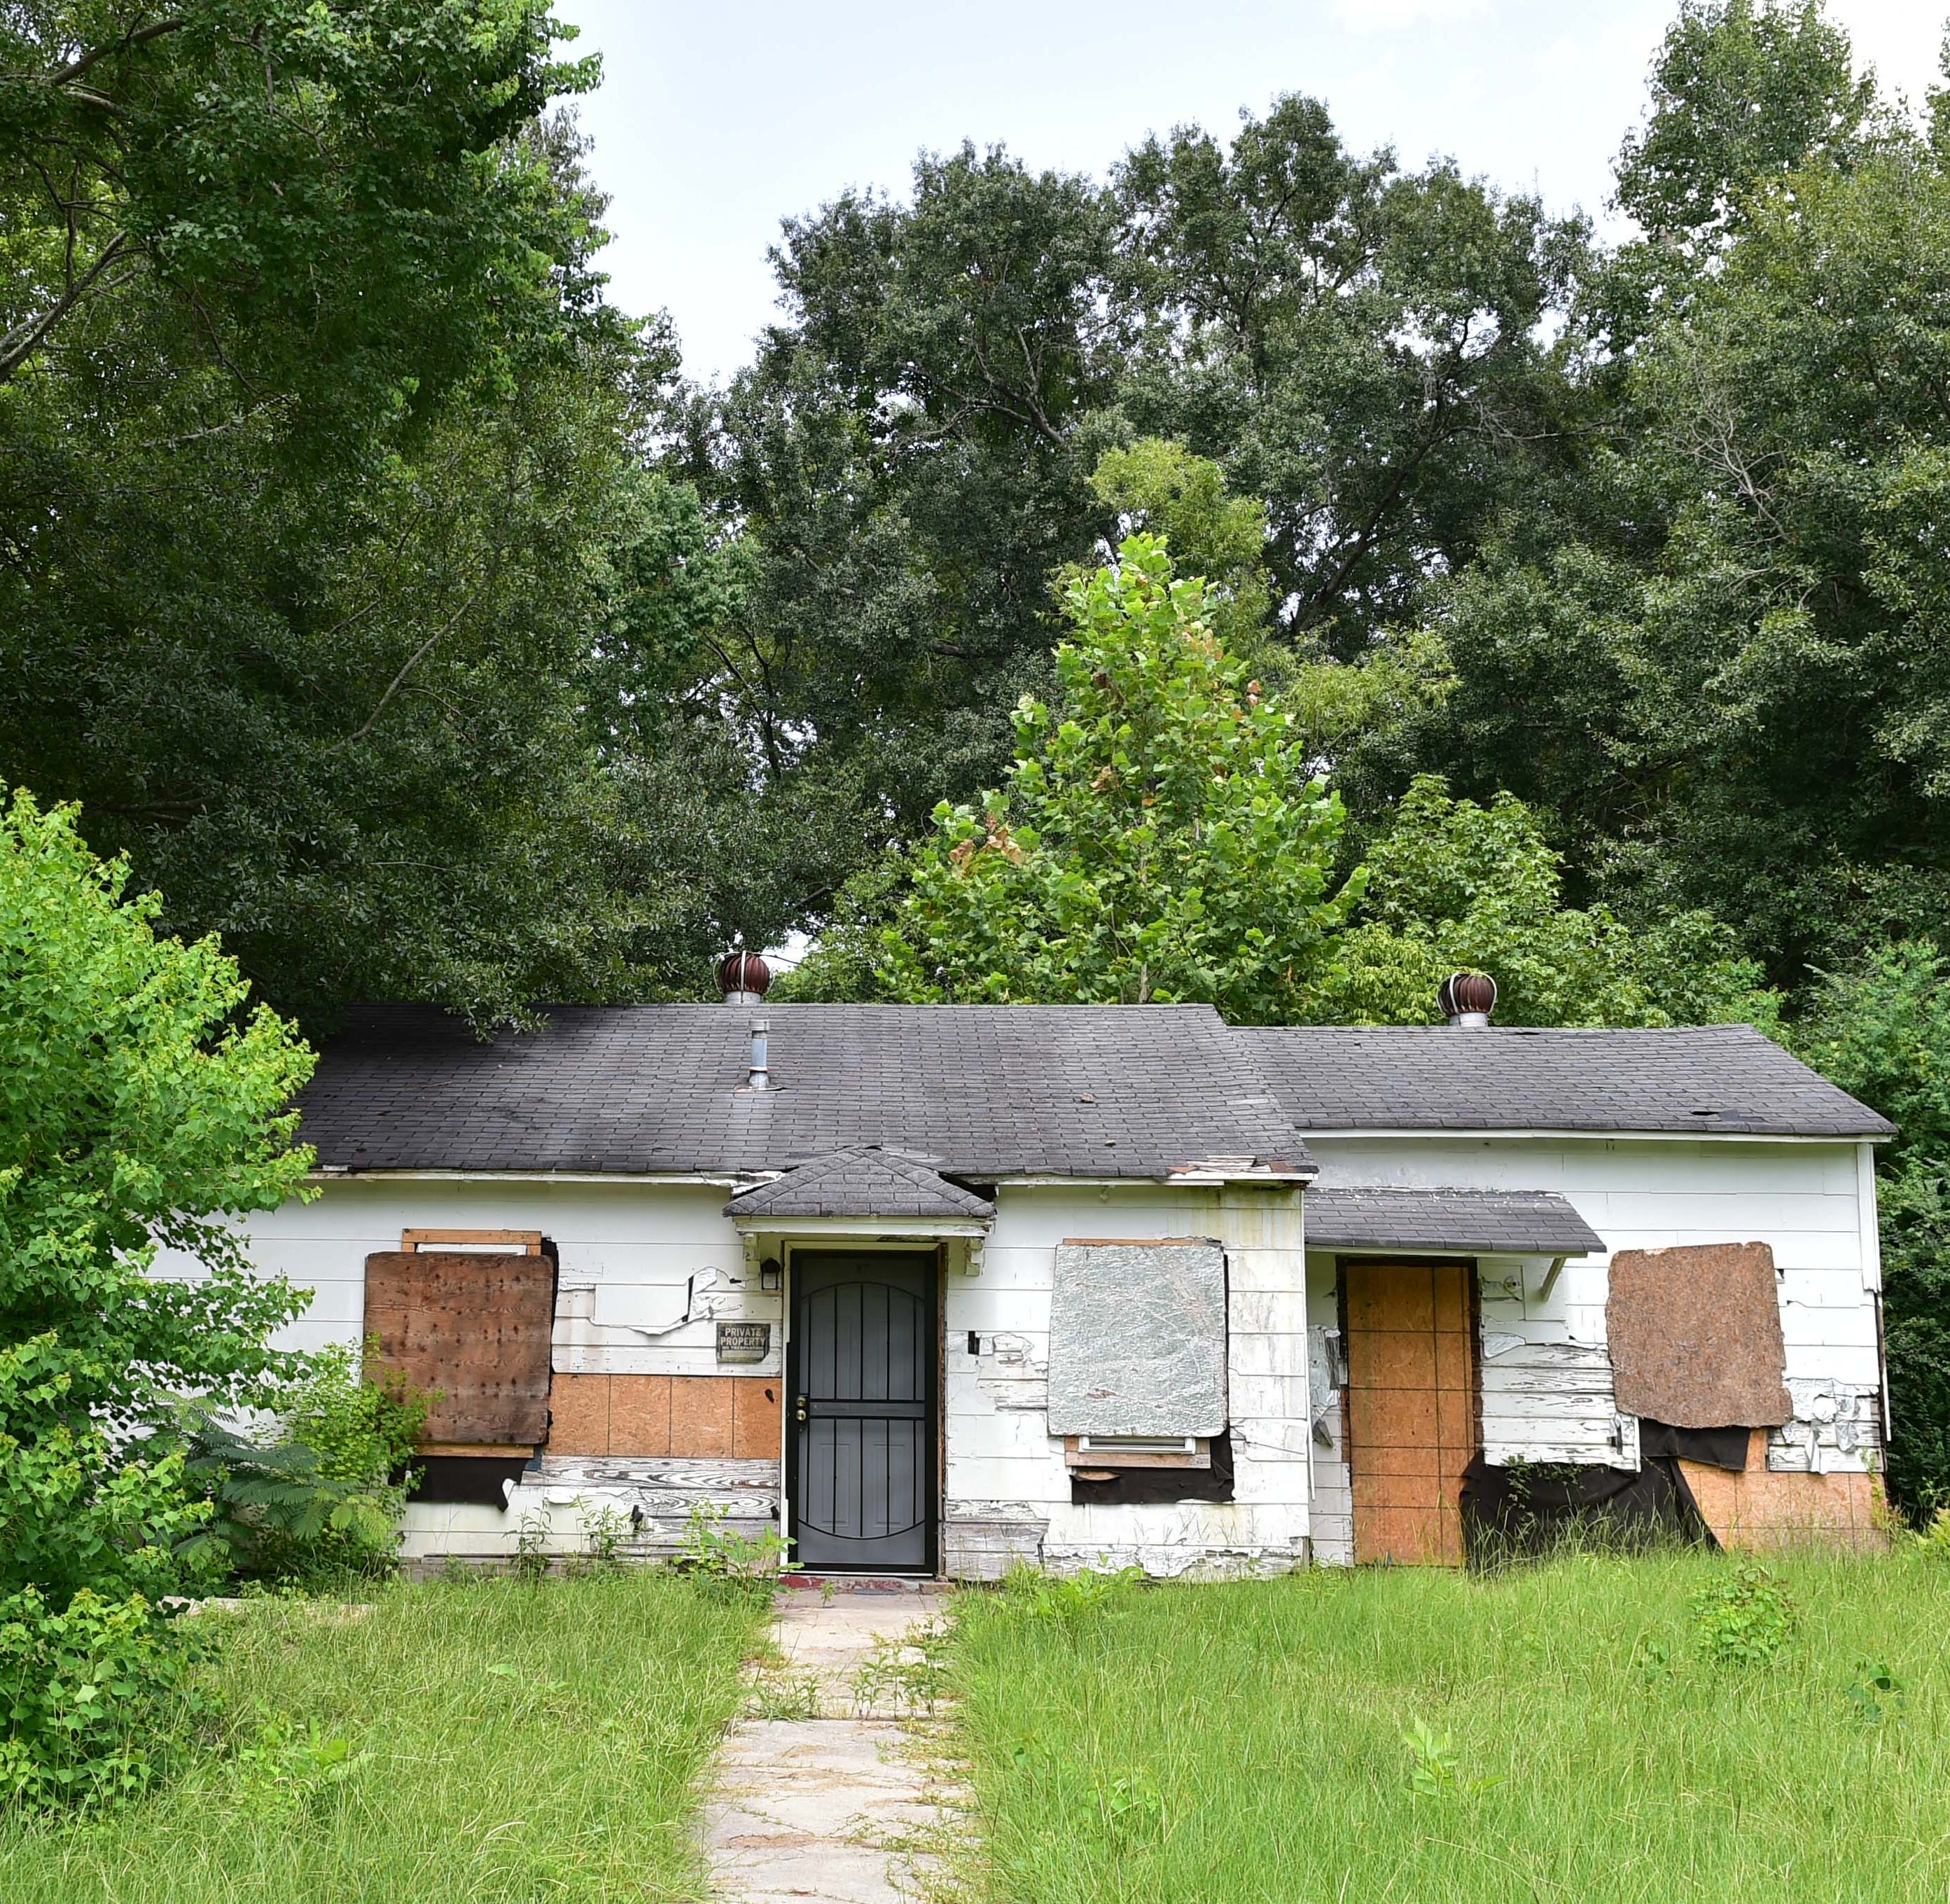 A home lies in disrepair is one of many spotting the neighborhood surrounding Viola E. Lake Elementary in Jackson. Tuesday, Aug. 14, 2018.